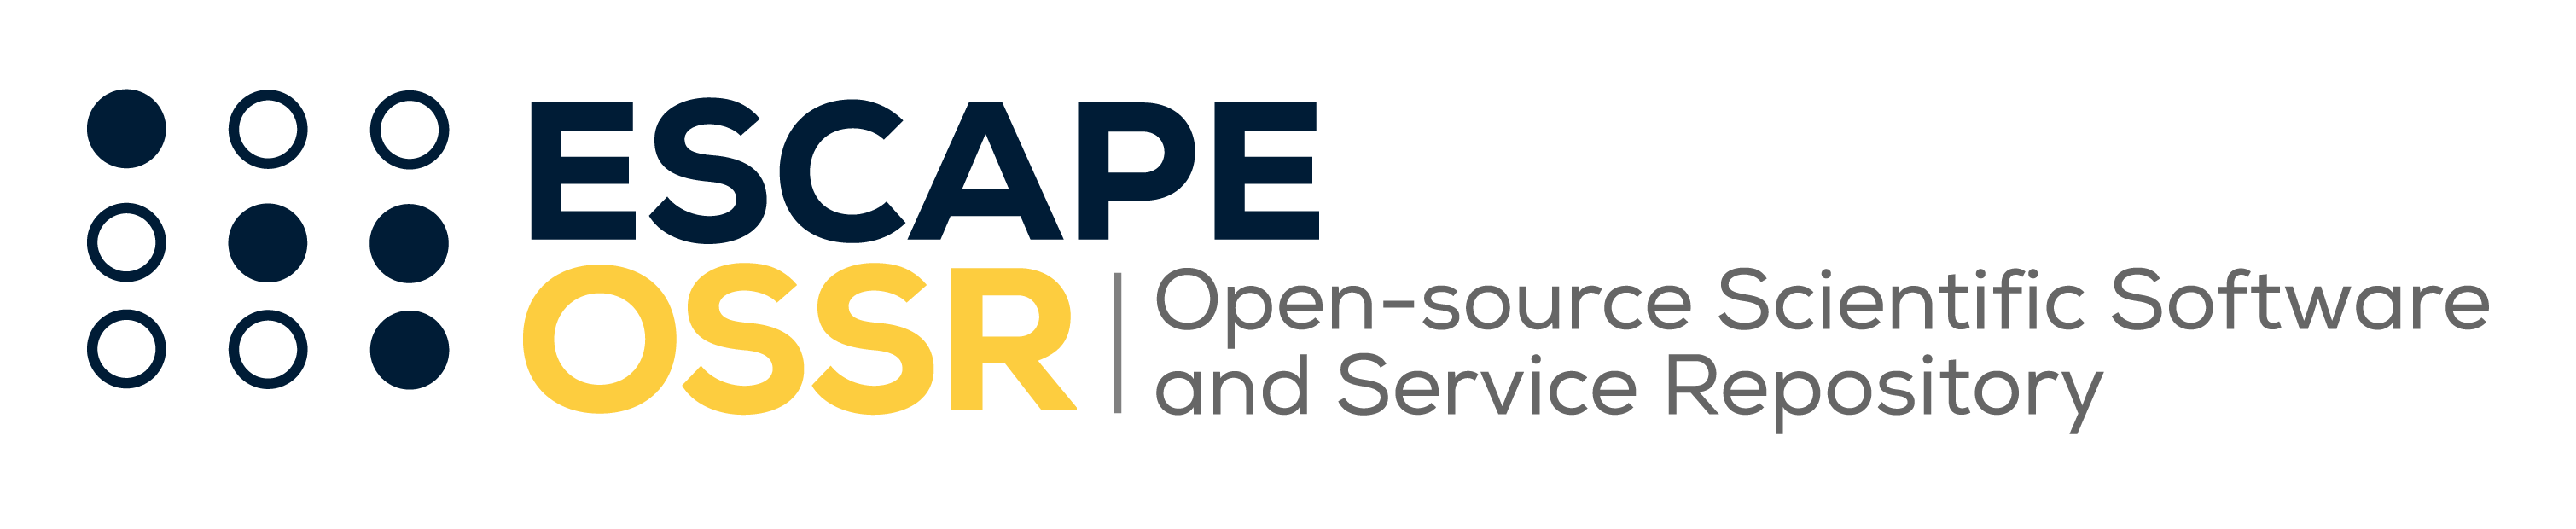 open source scientific software and service repository